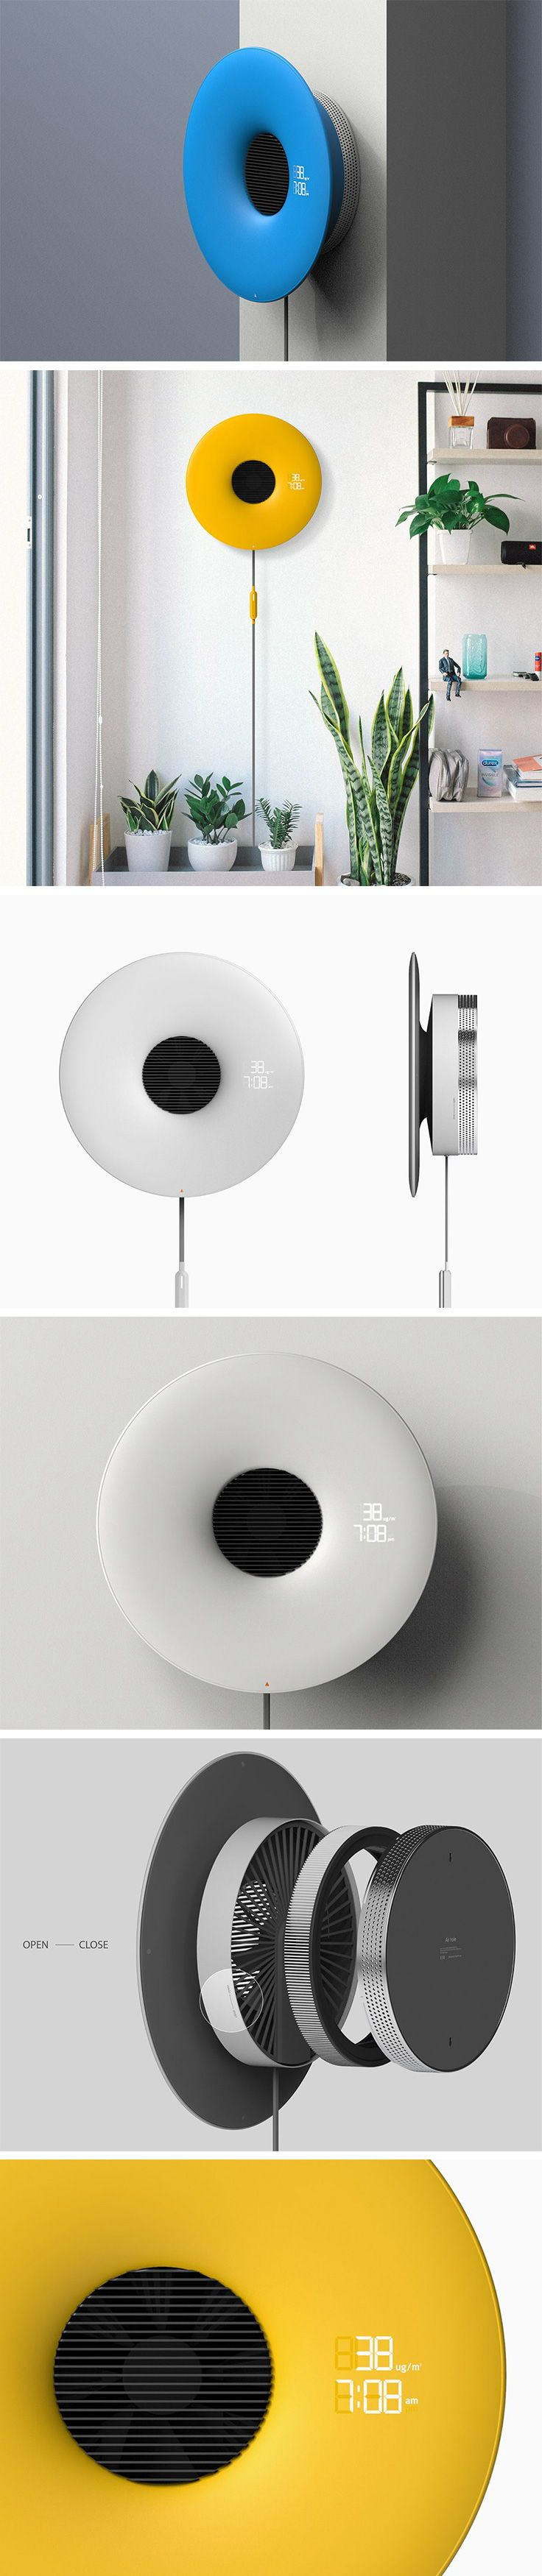 The Air Hole is the wallmounted air purifier that has